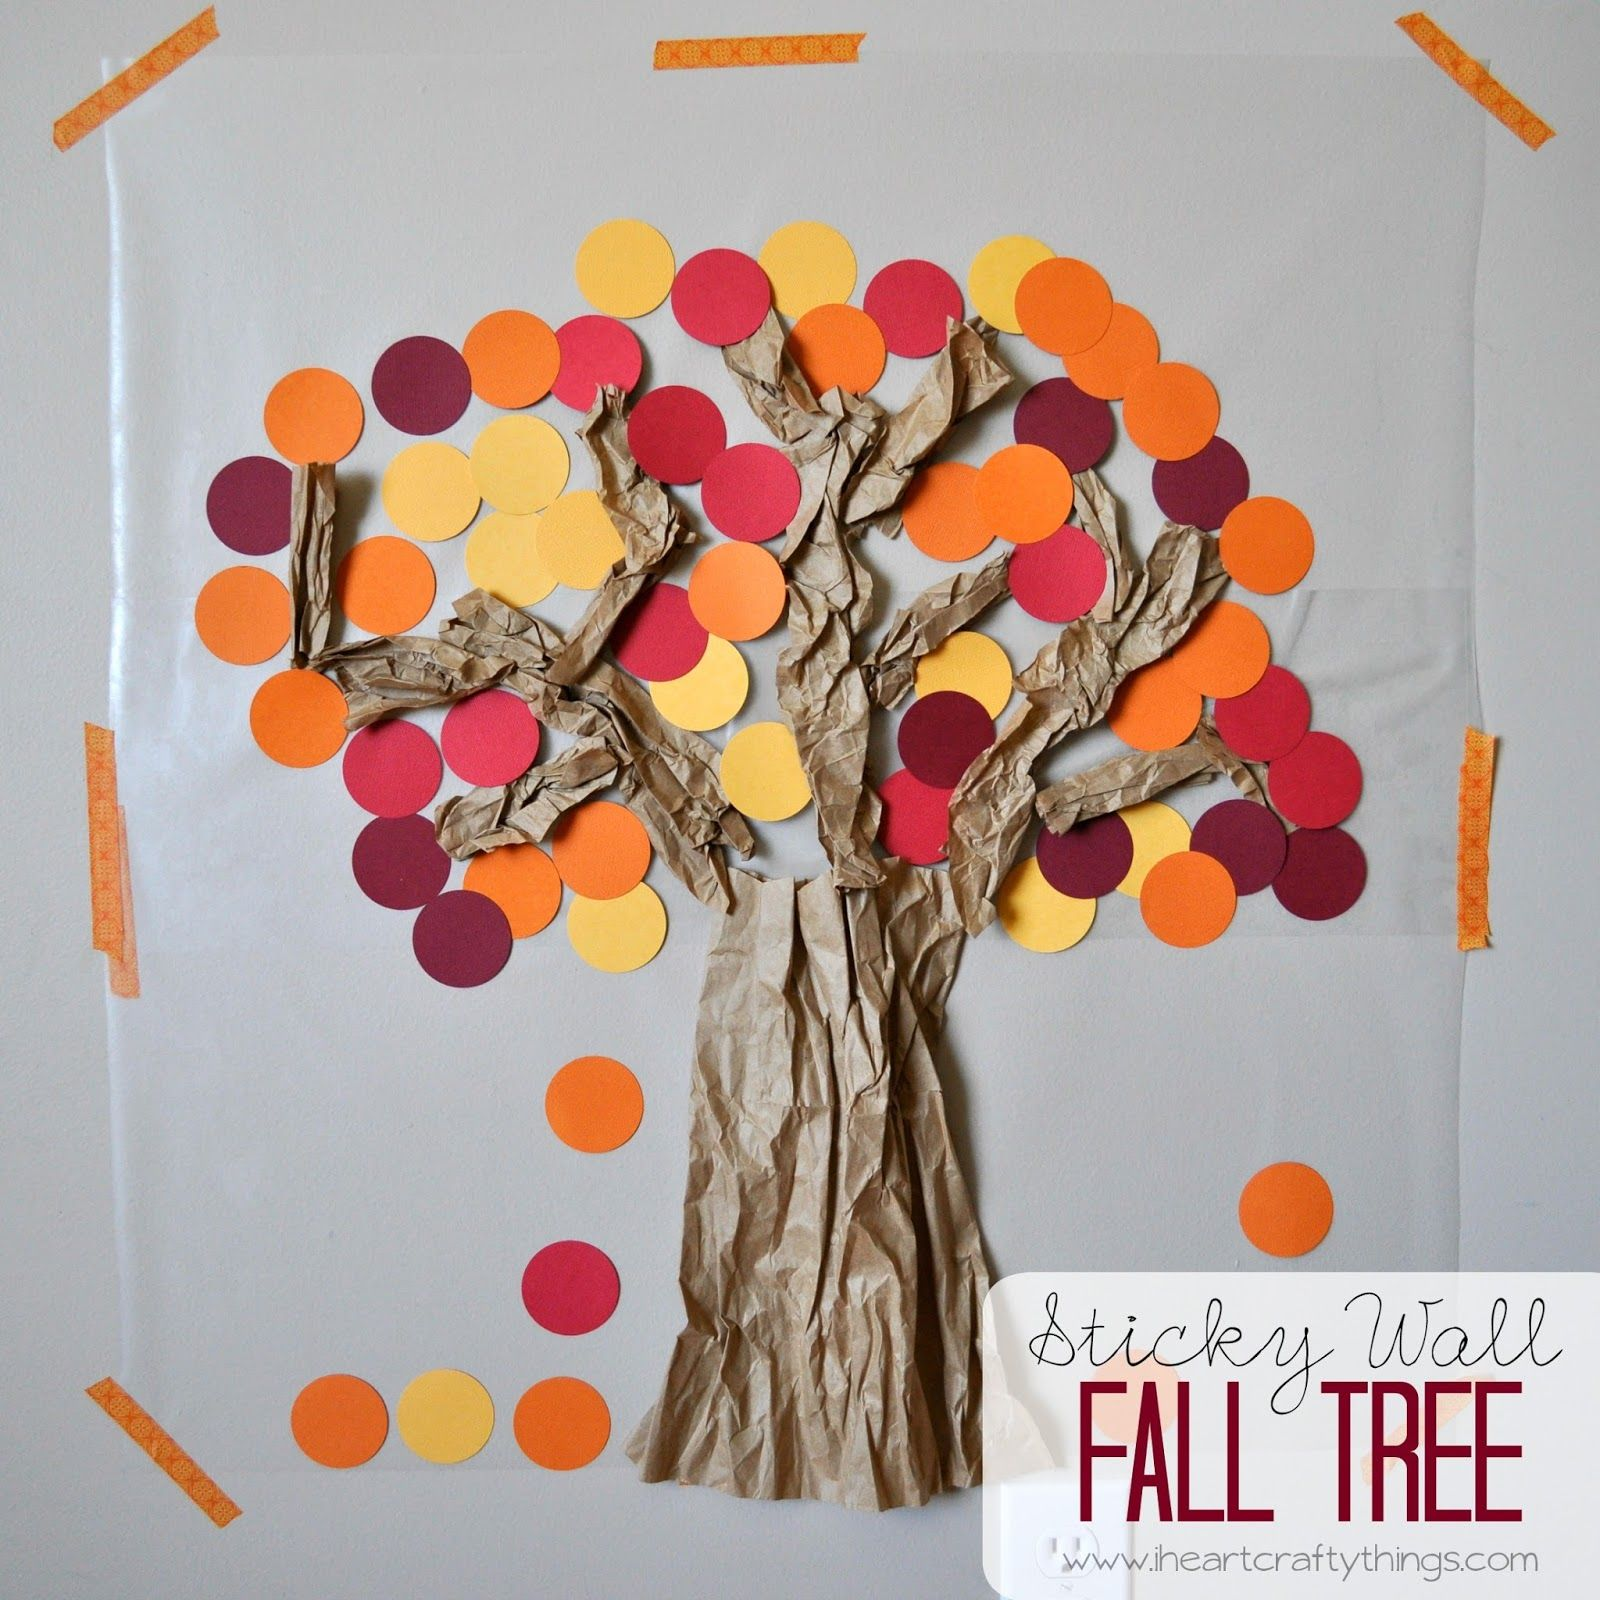 Contact Paper Sticky Wall Fall Tree